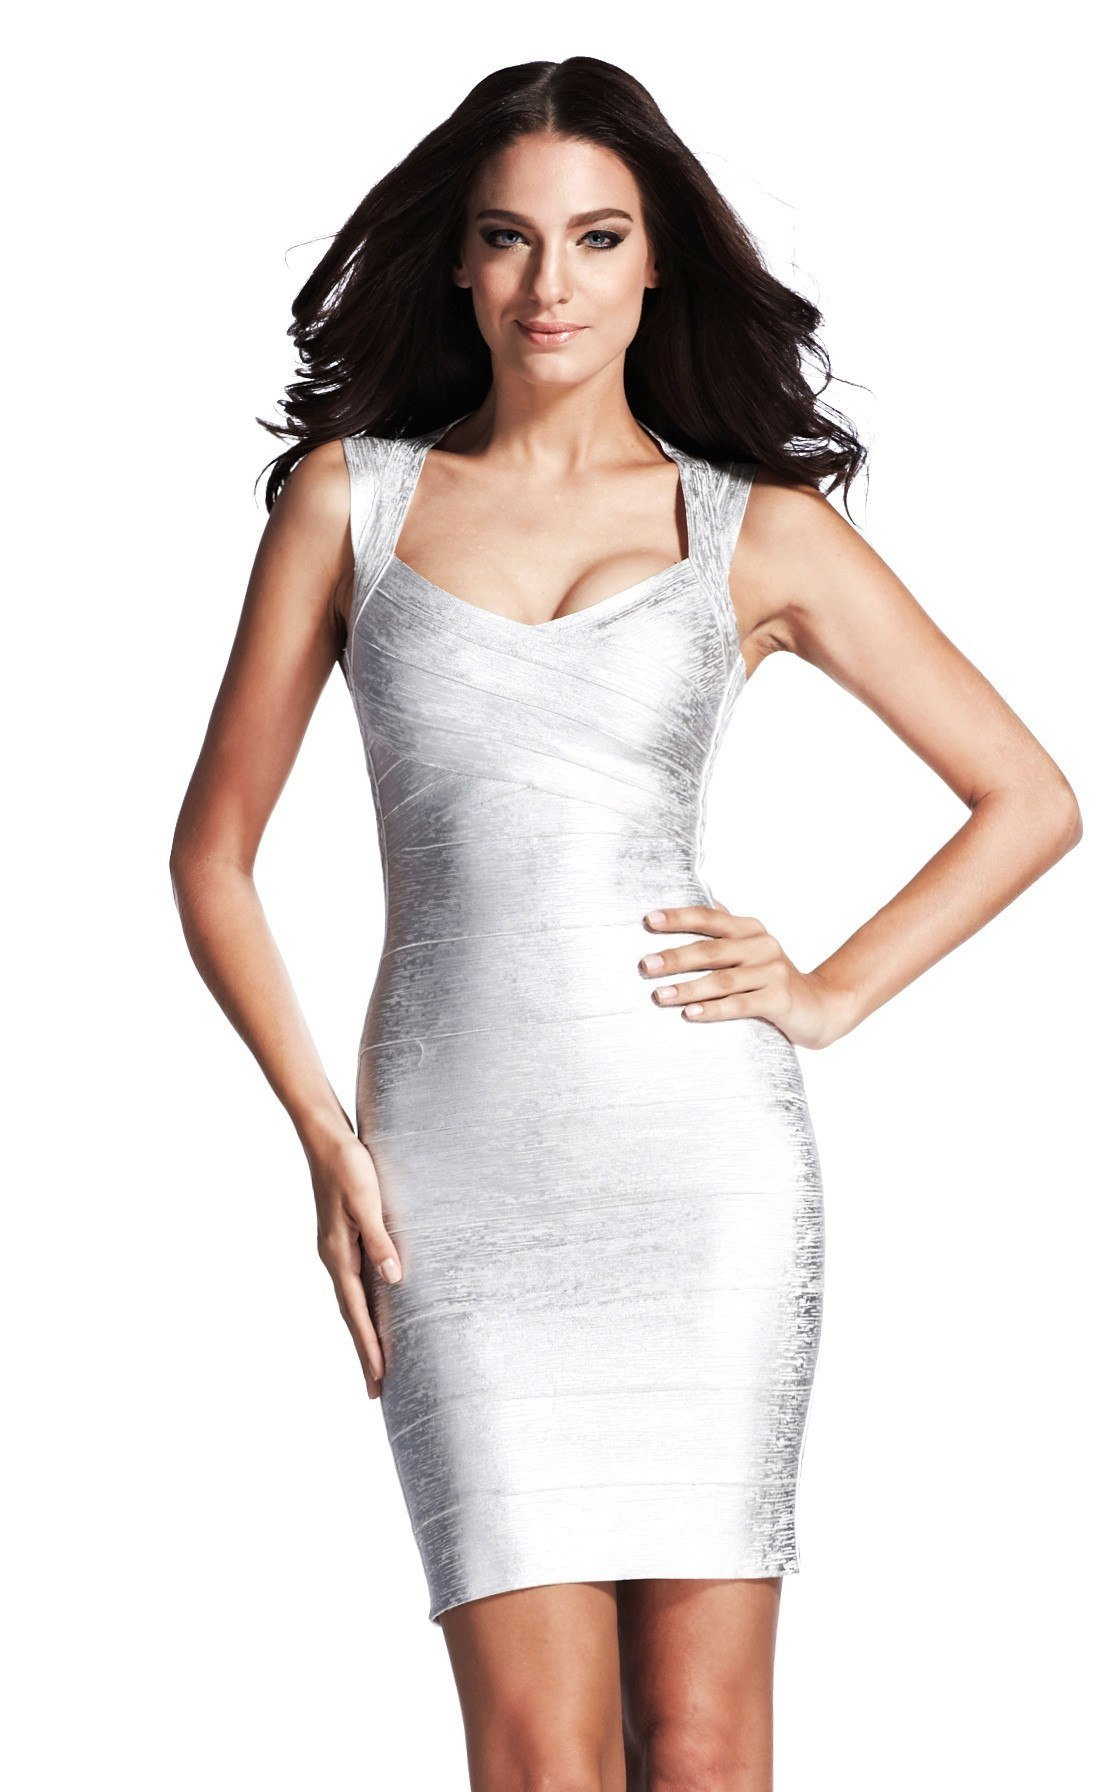 bandage dresses silver metallic bandage dress ... bdfisrz